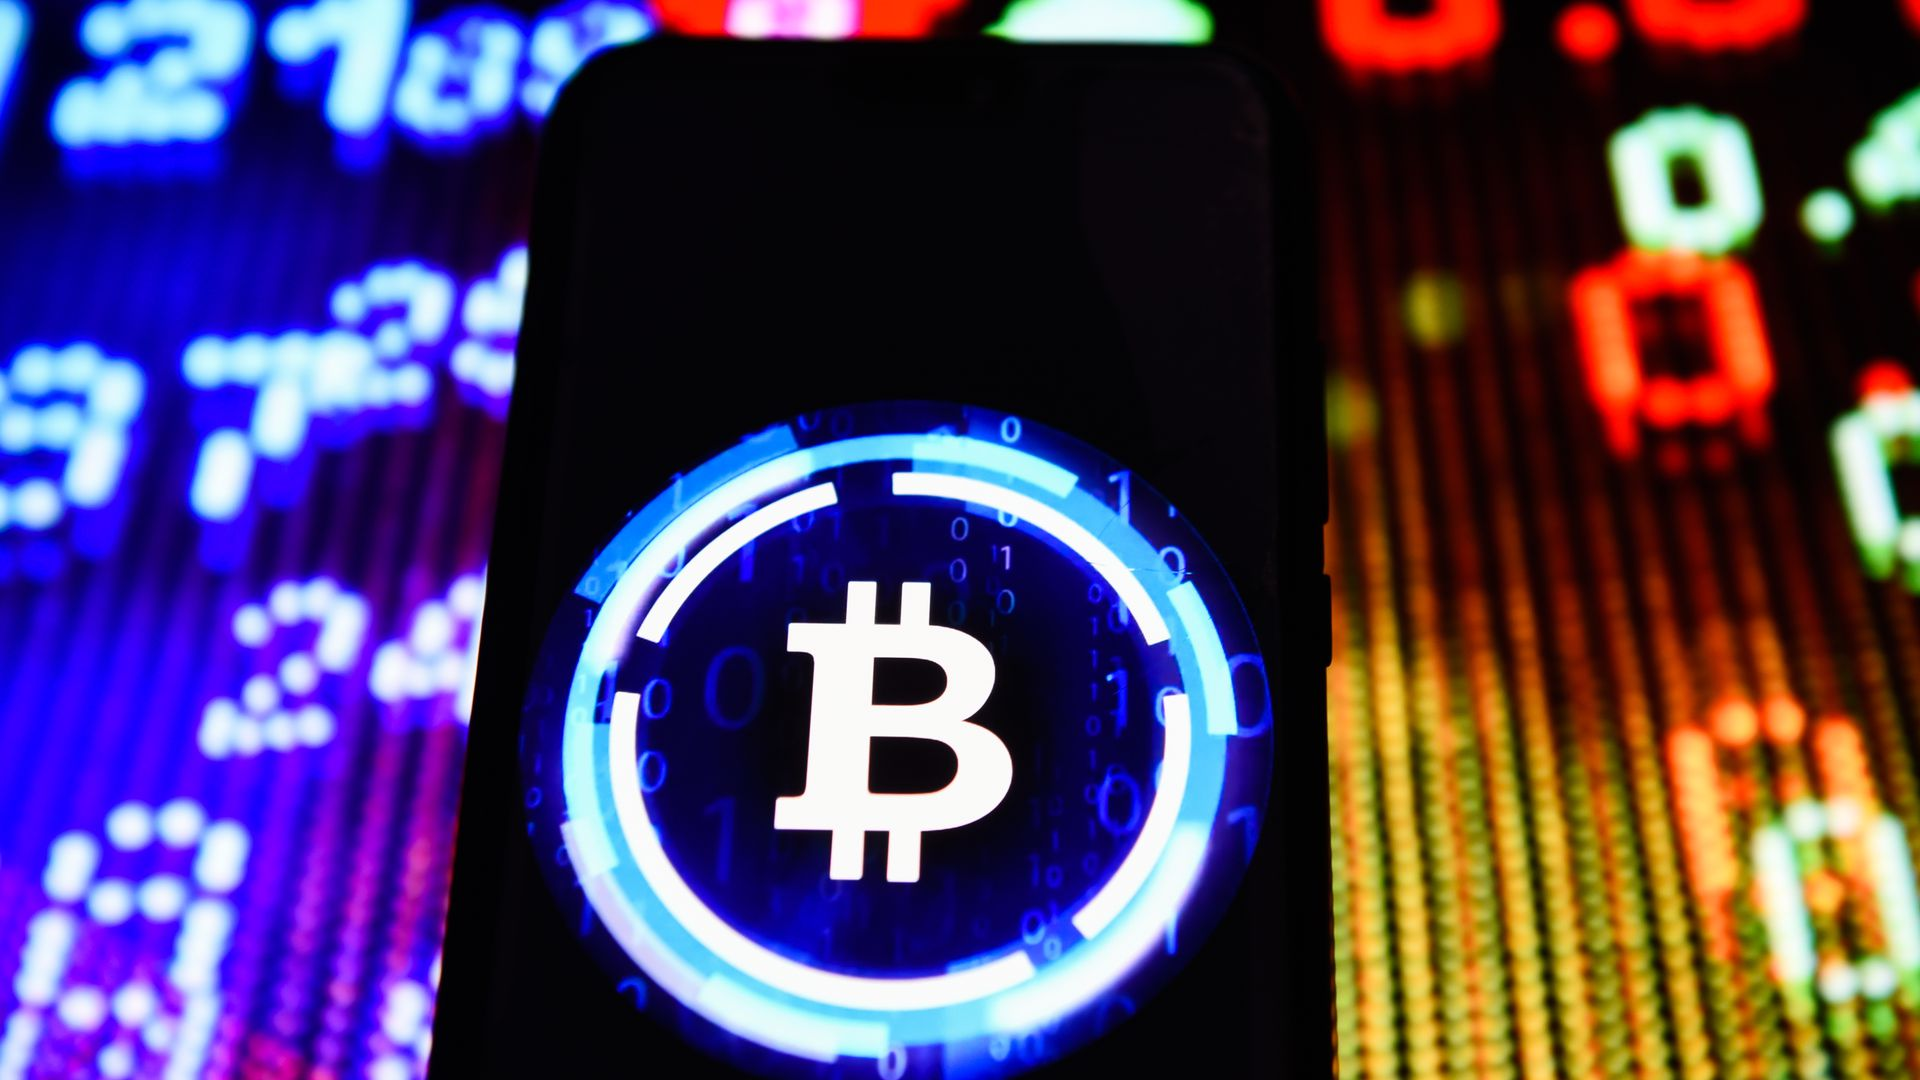 In this image, the neon blue and white Bitcoin logo is highlighted on a black phone screen in front of a bright colored background of numbers.